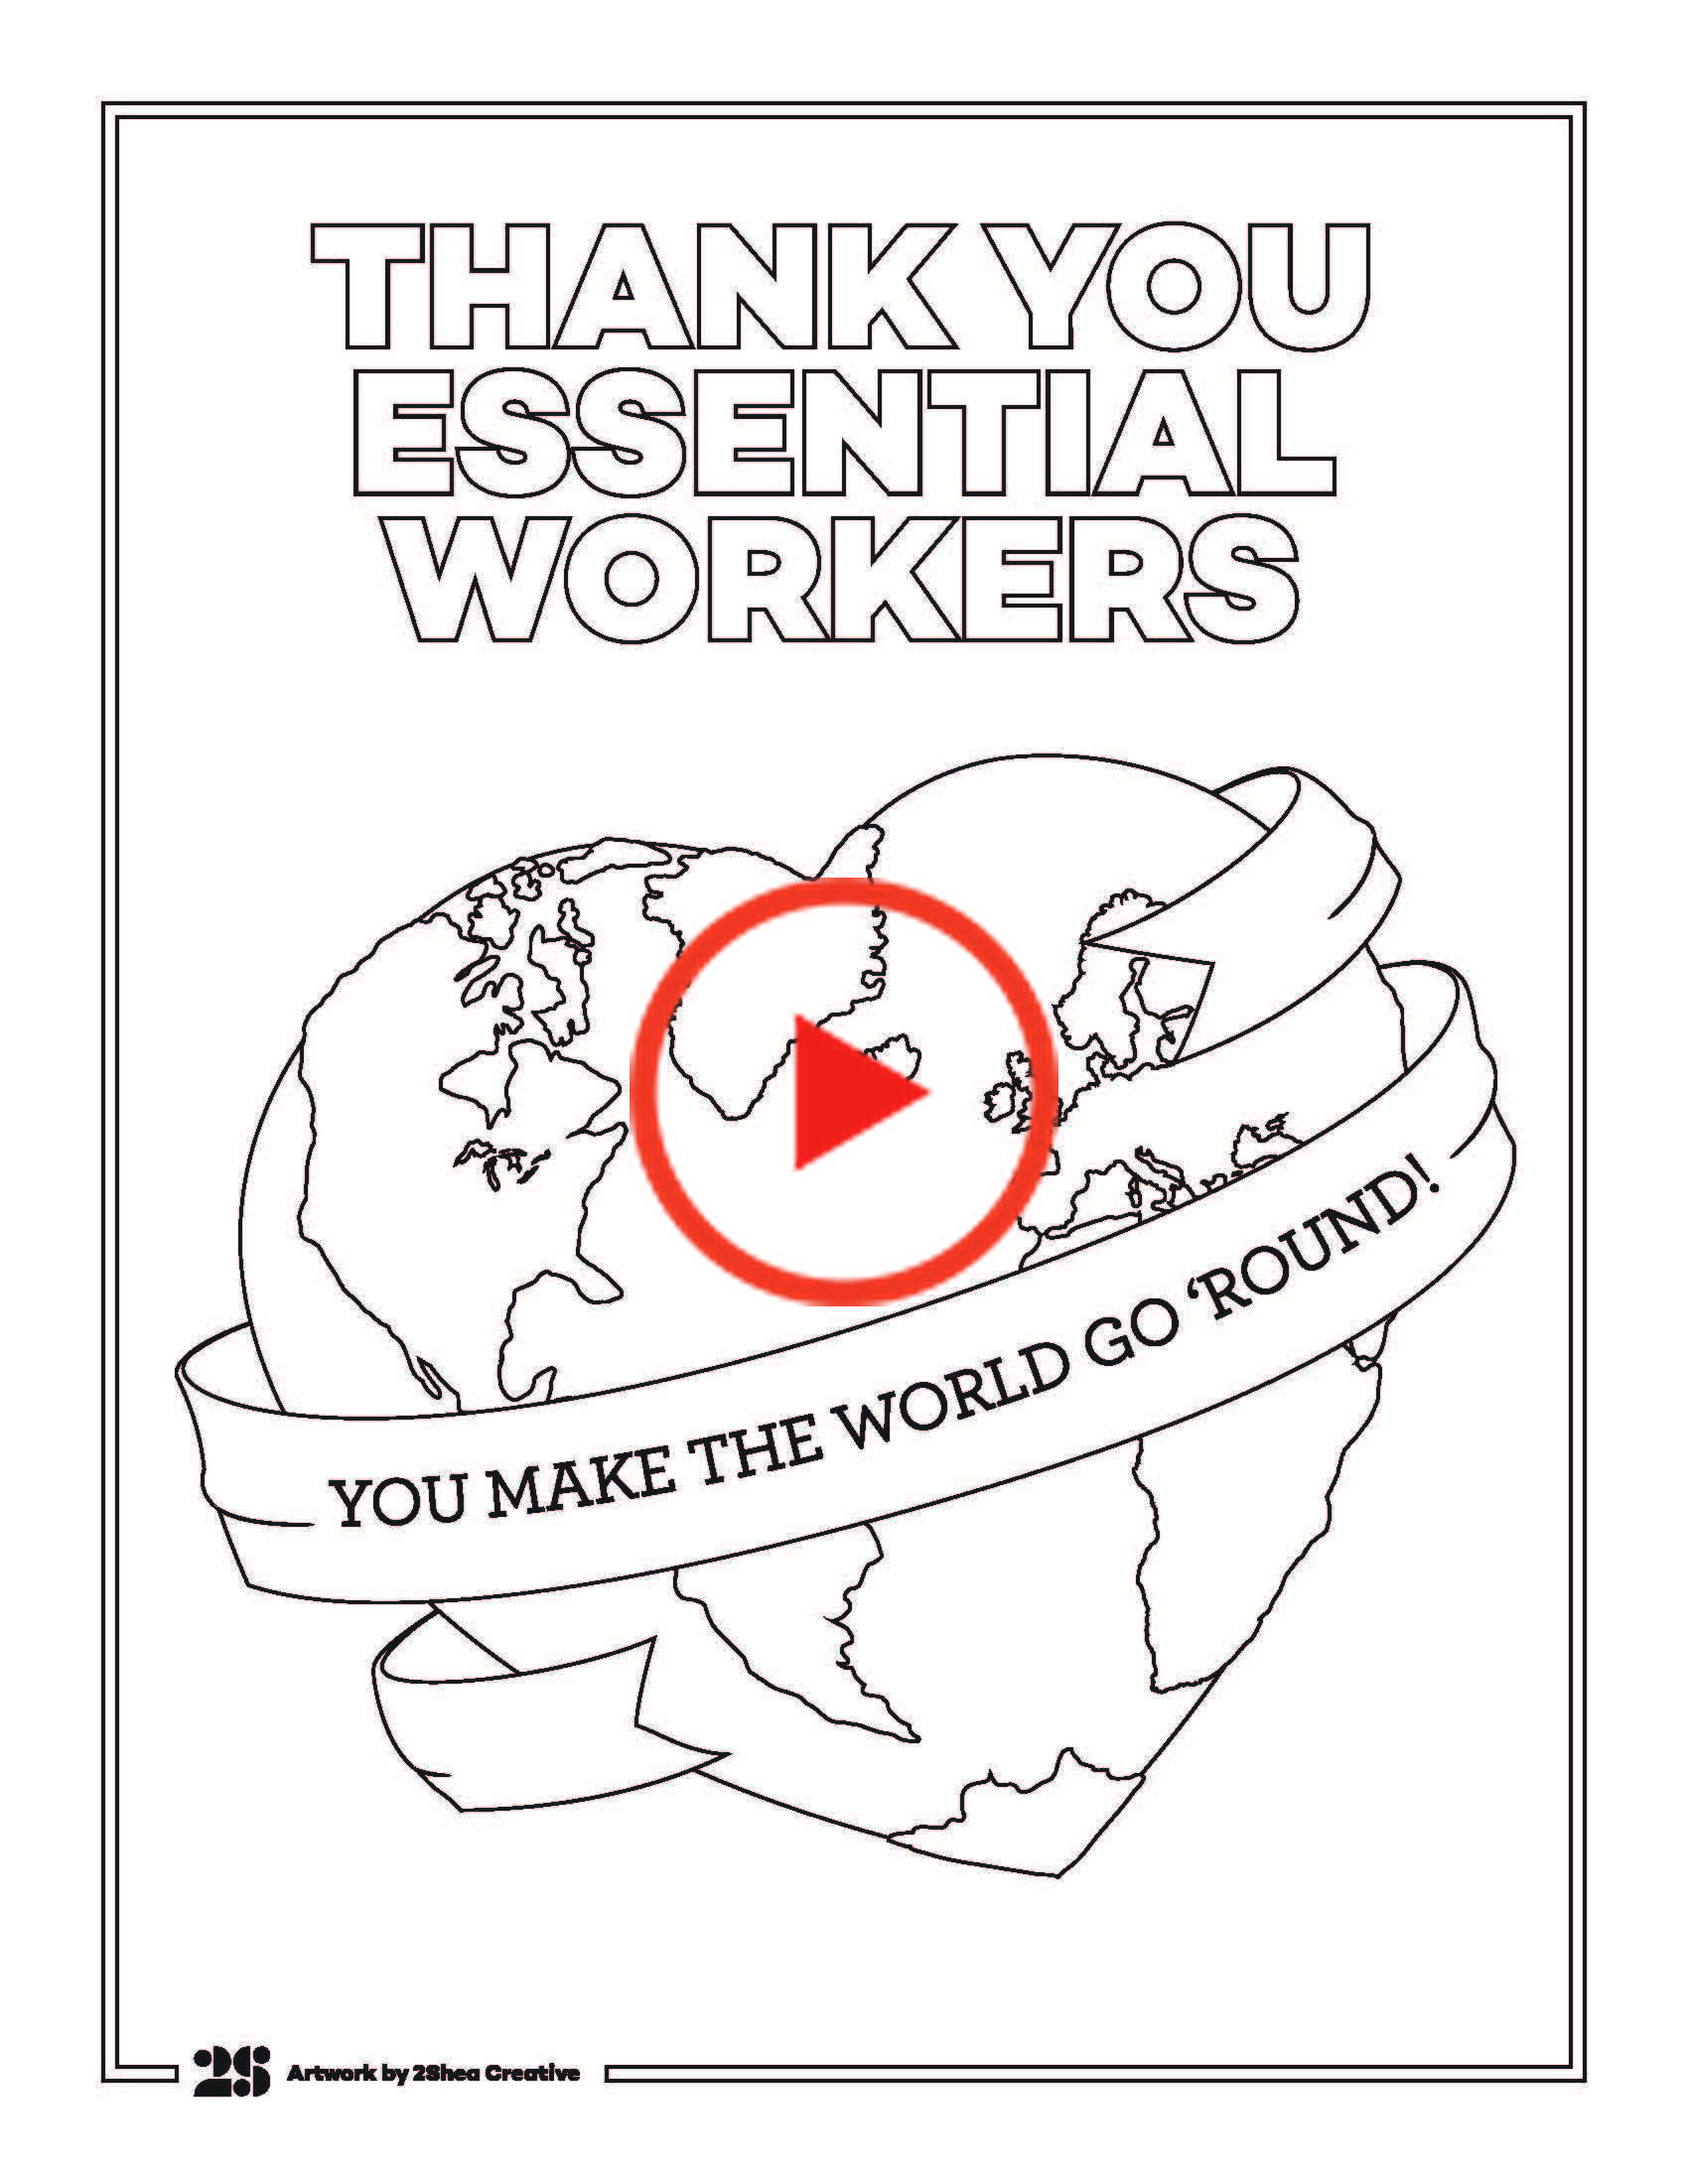 We Created This Coloring Page To Show Our Gratitude For All The Essential Workers That Continue To Coloring Pages Colorful Prints Colo